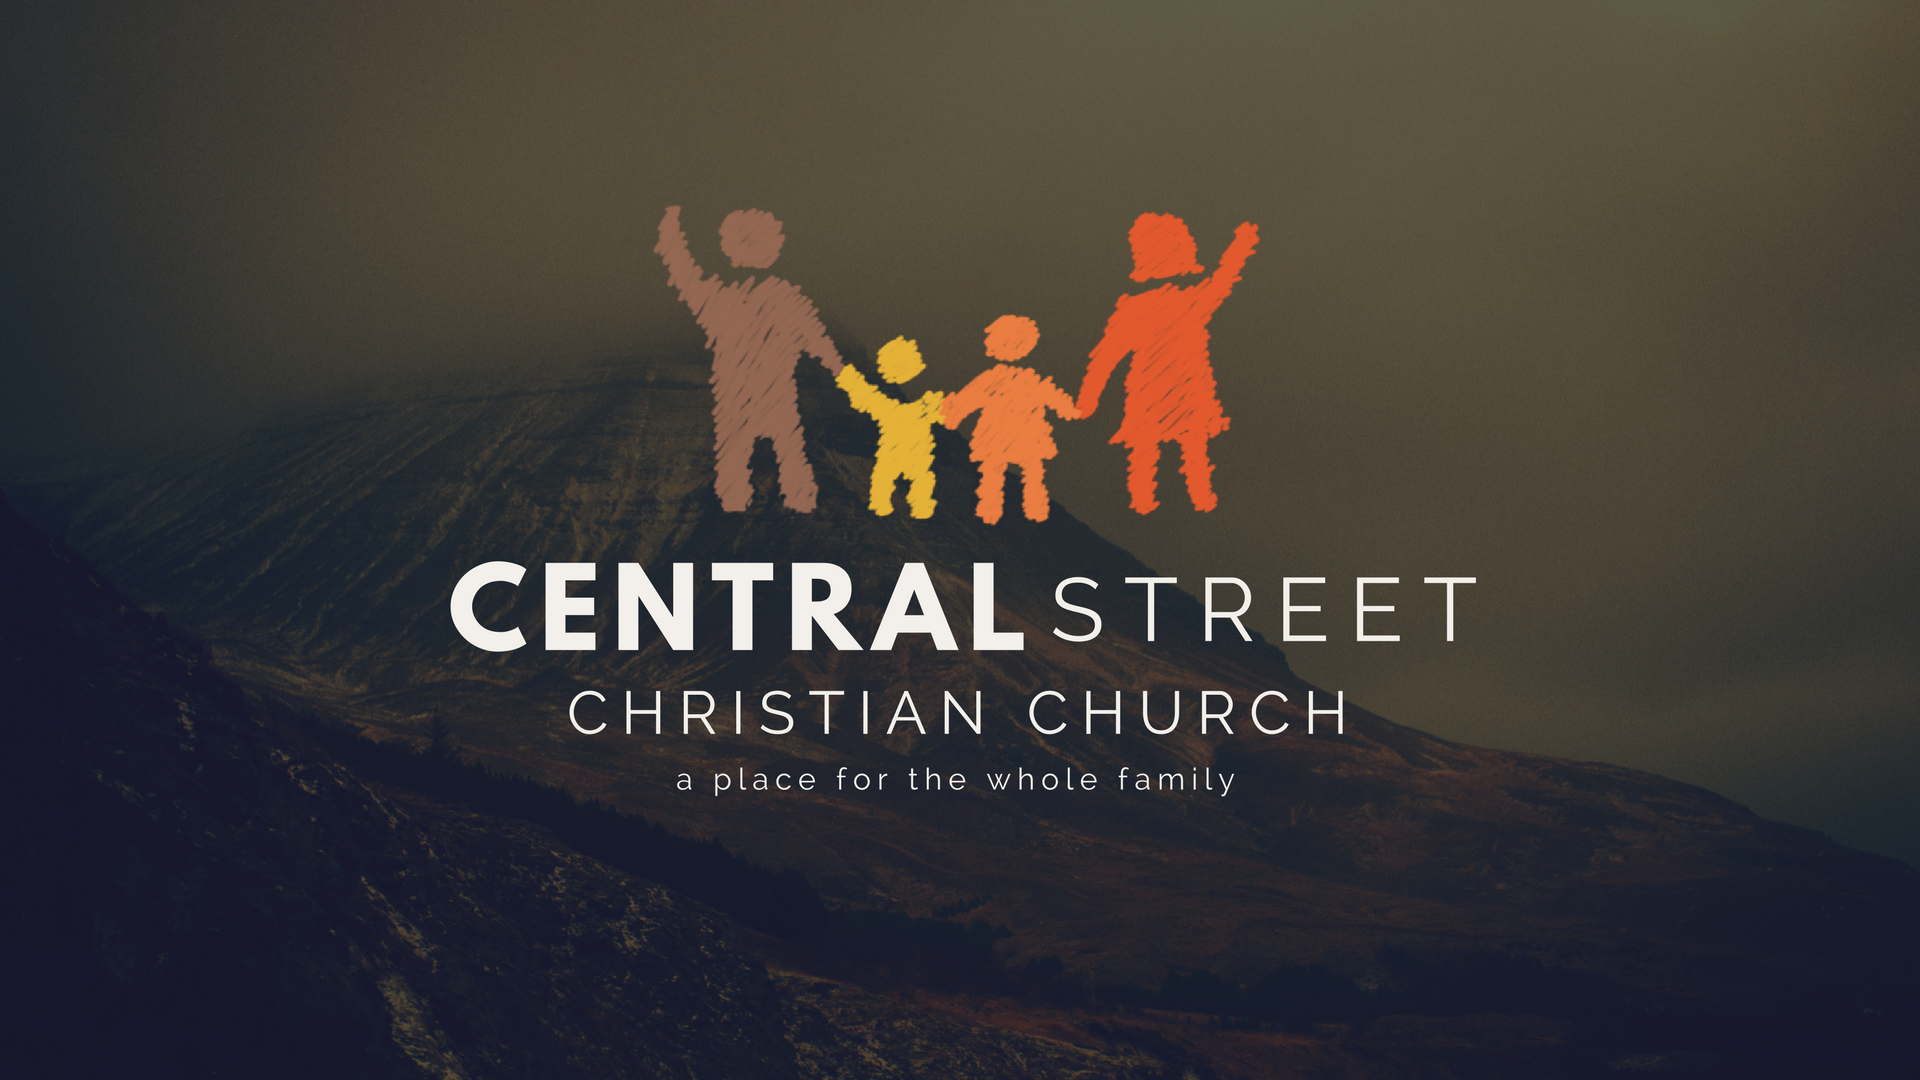 Central Street Christian Church